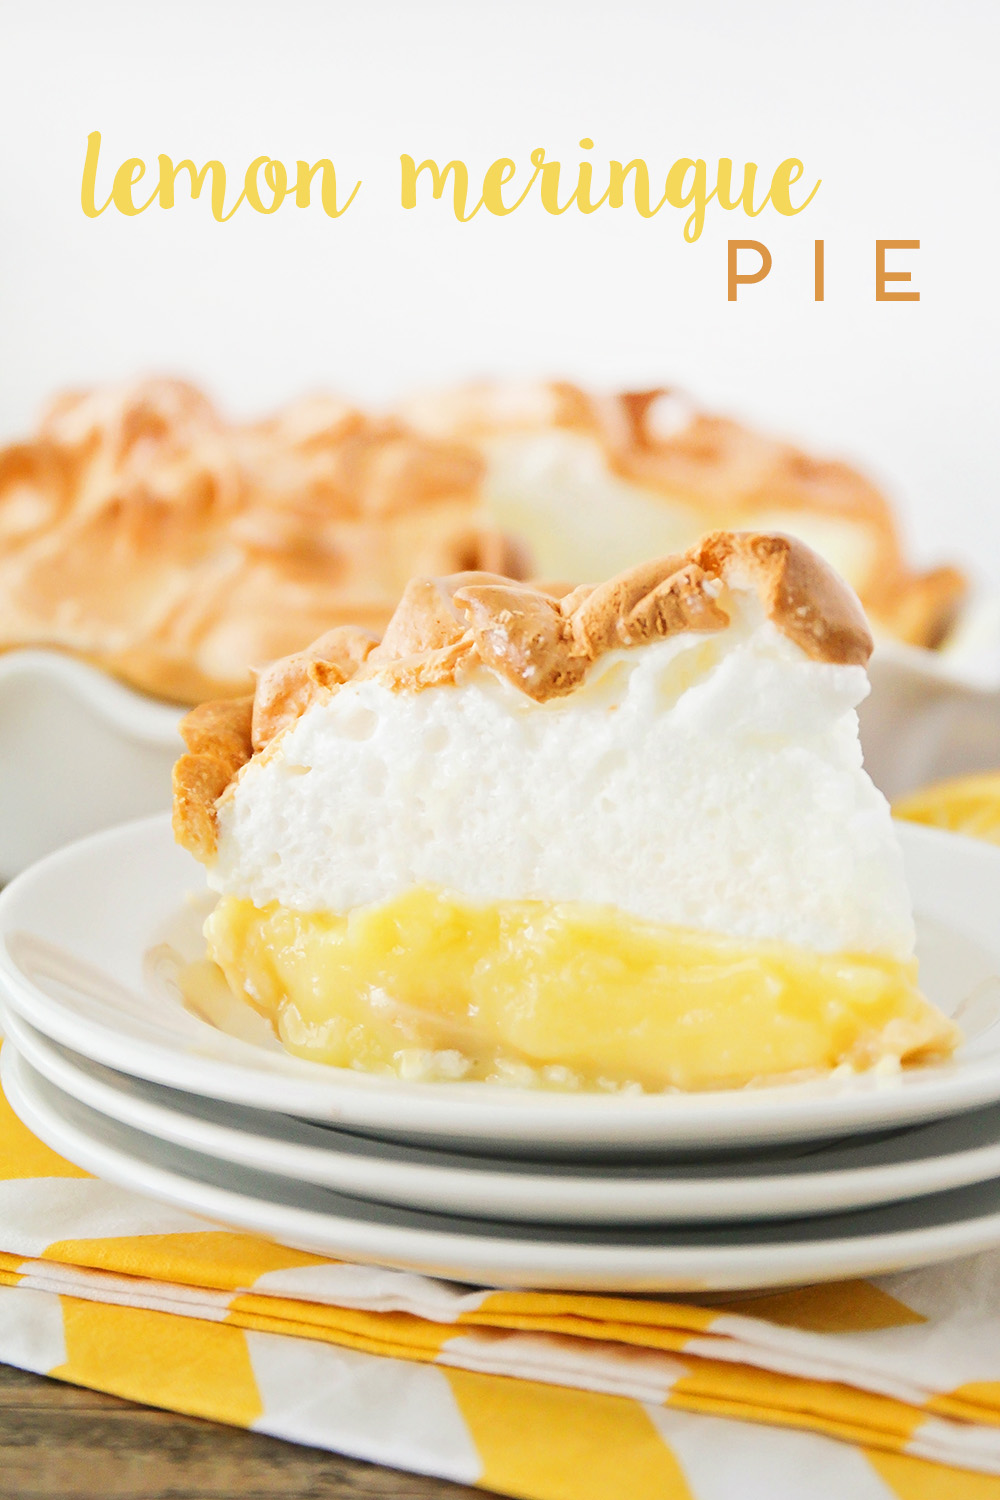 This lemon meringue pie is so heavenly and easy to make too! Deliciously tart and flavorful lemon custard topped with clouds of sweet fluffy meringue, for a show-stopping dessert!